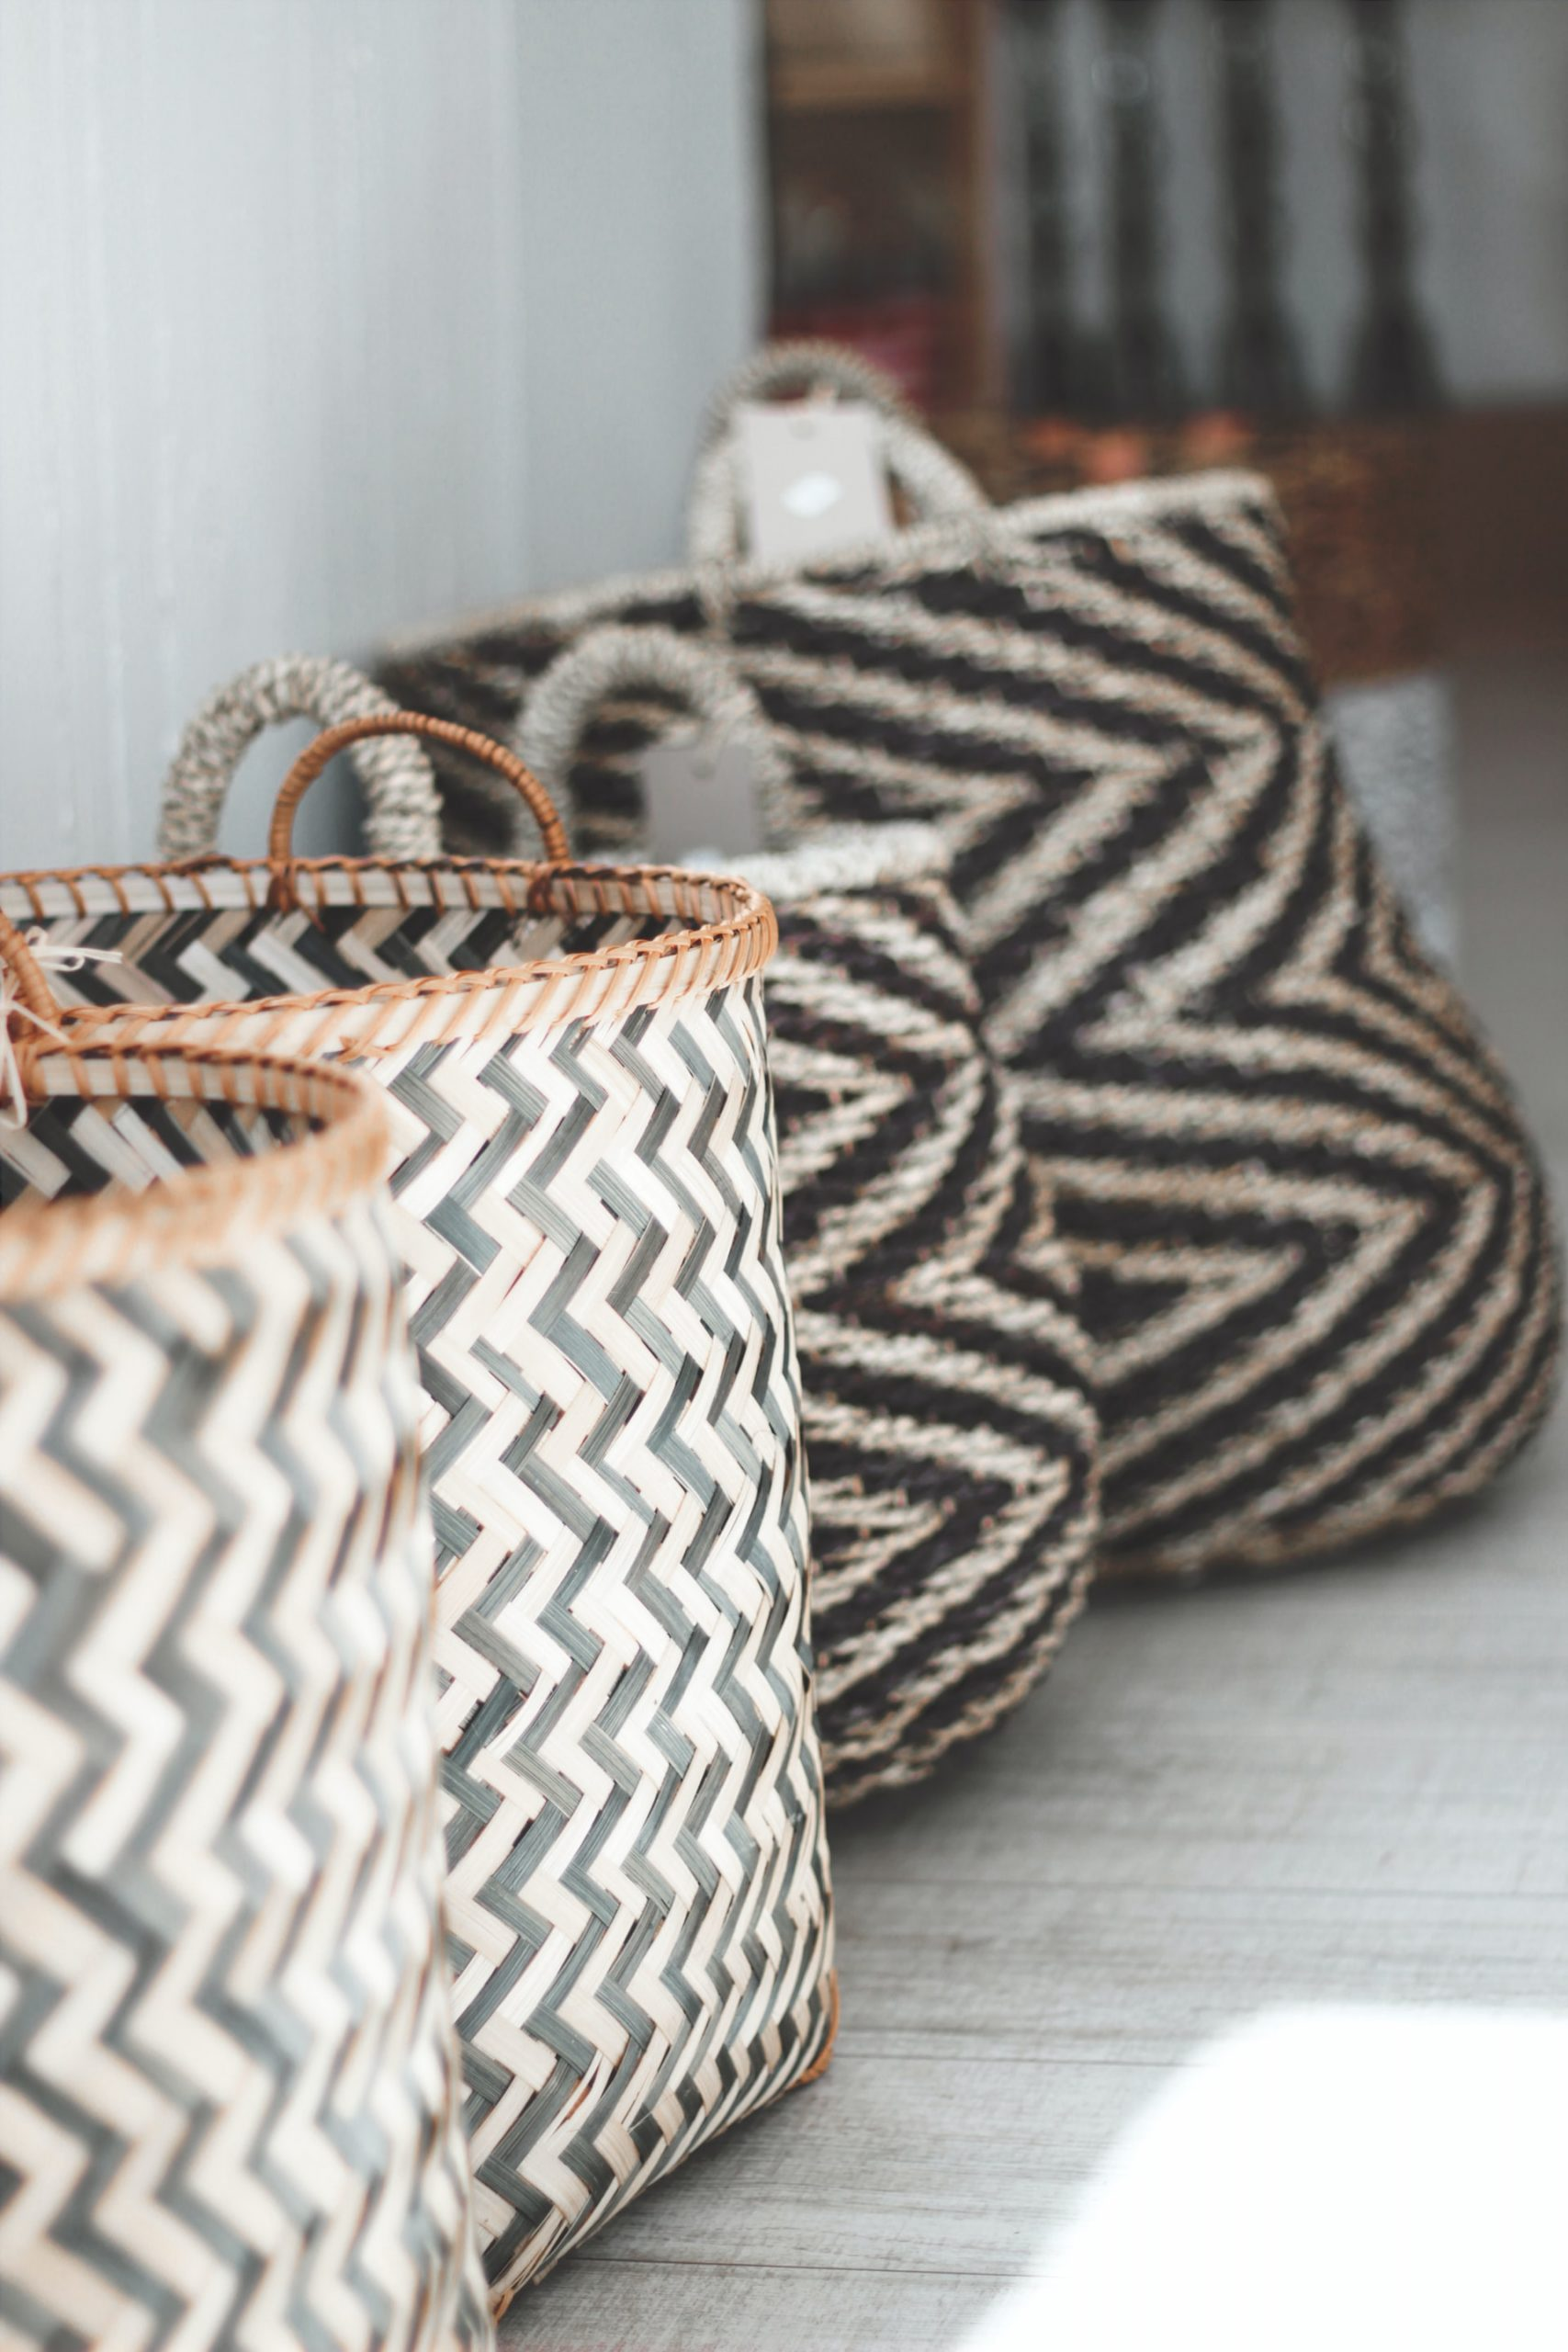 Baskets for shoes and throw storage